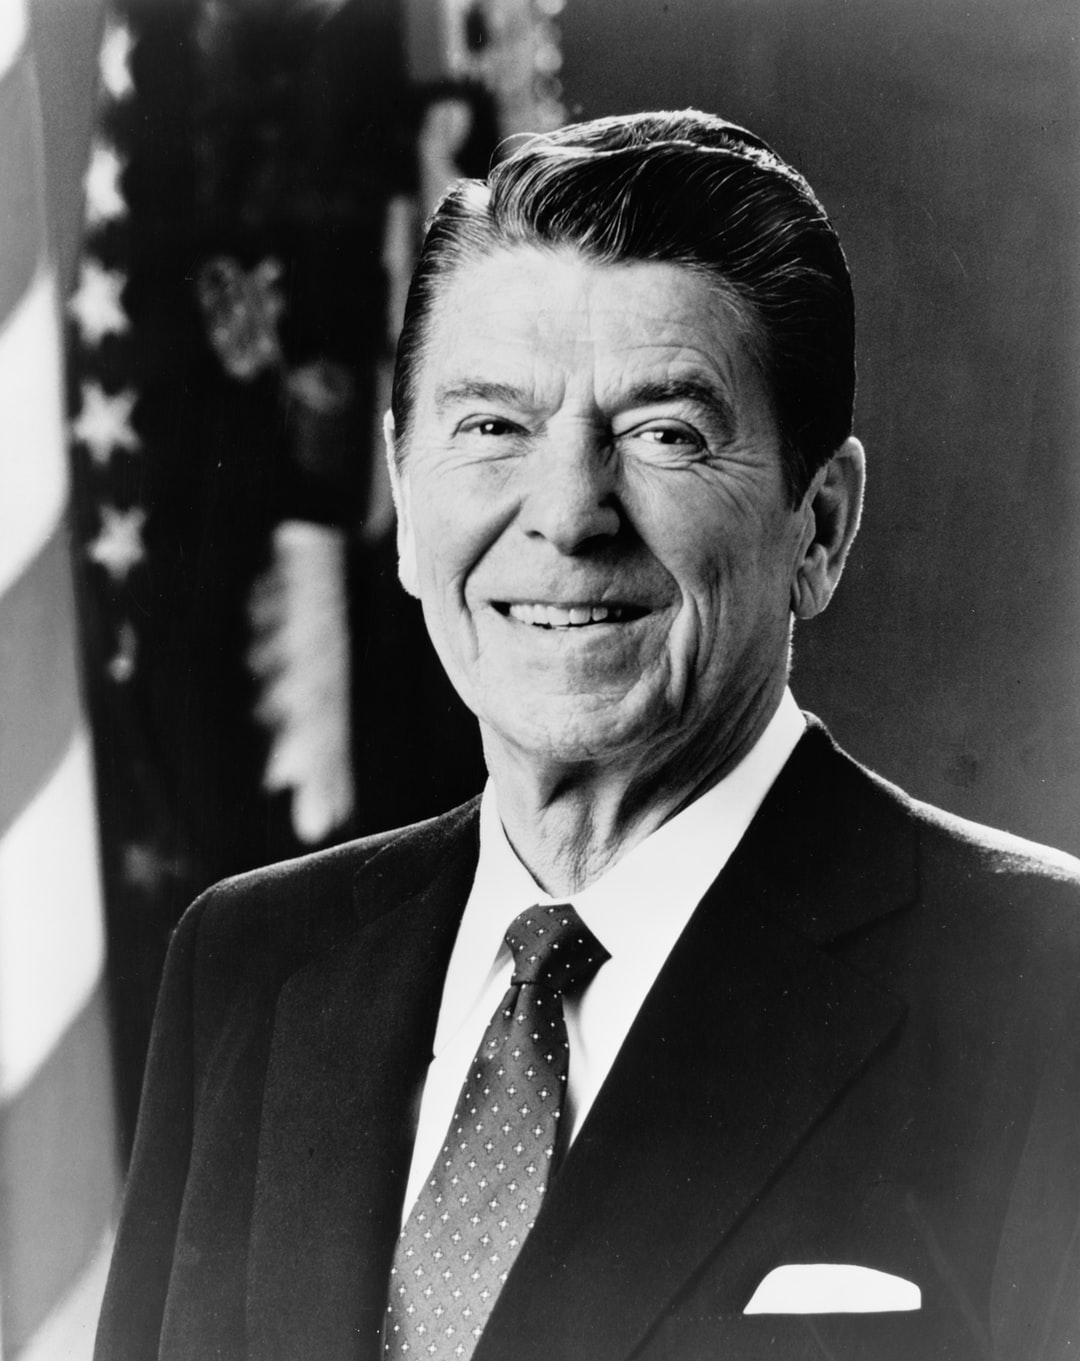 [Ronald Reagan, head-and-shoulders portrait, facing front]. Photograph from the Presidential File Collection, 1981. Library of Congress Prints & Photographs Division.   https://www.loc.gov/item/96522678/